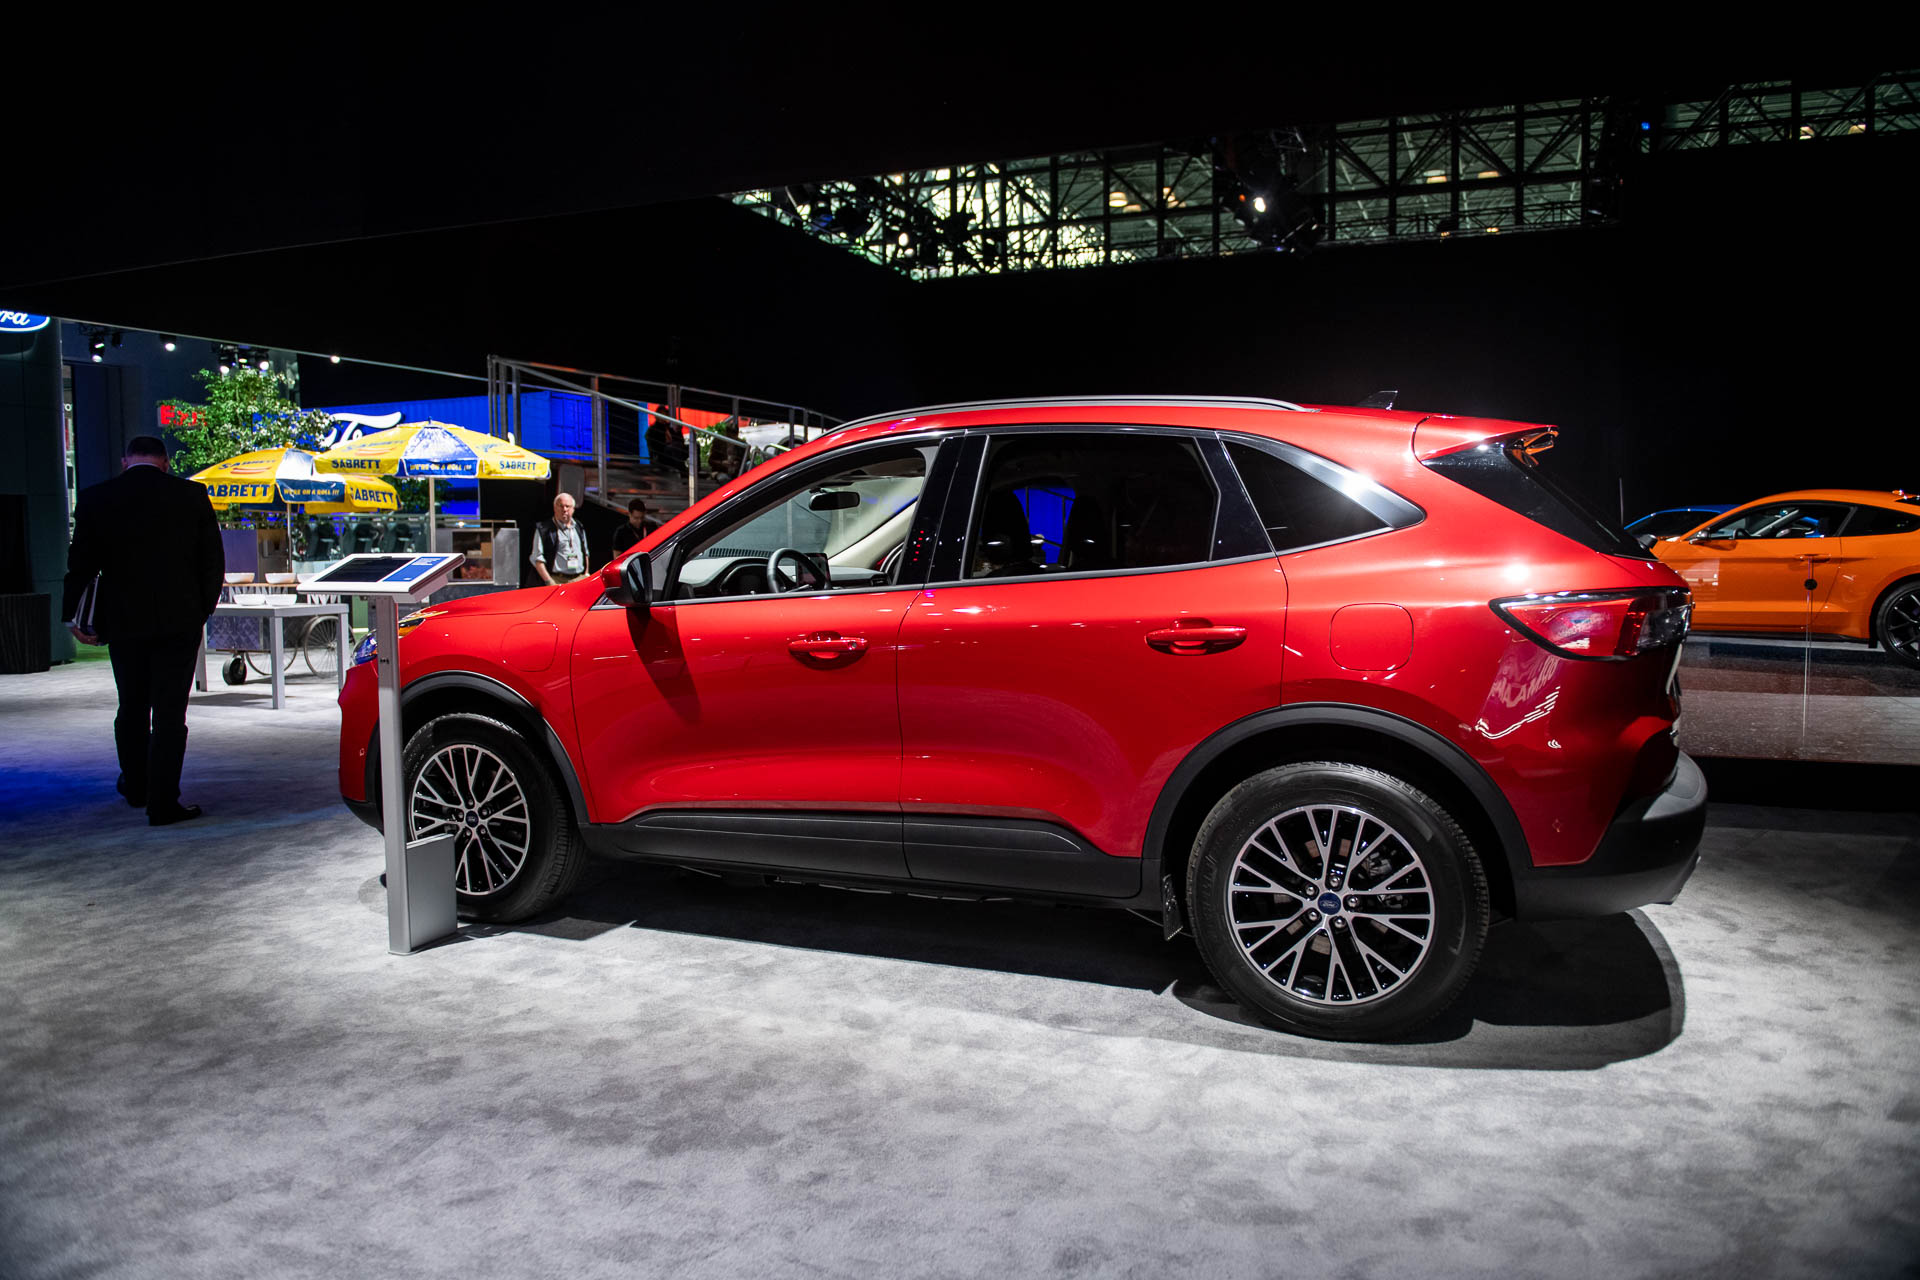 2020 Ford Escape Revealed Crossover Suv Brings Plug In Hybrid Tech To Mainstream